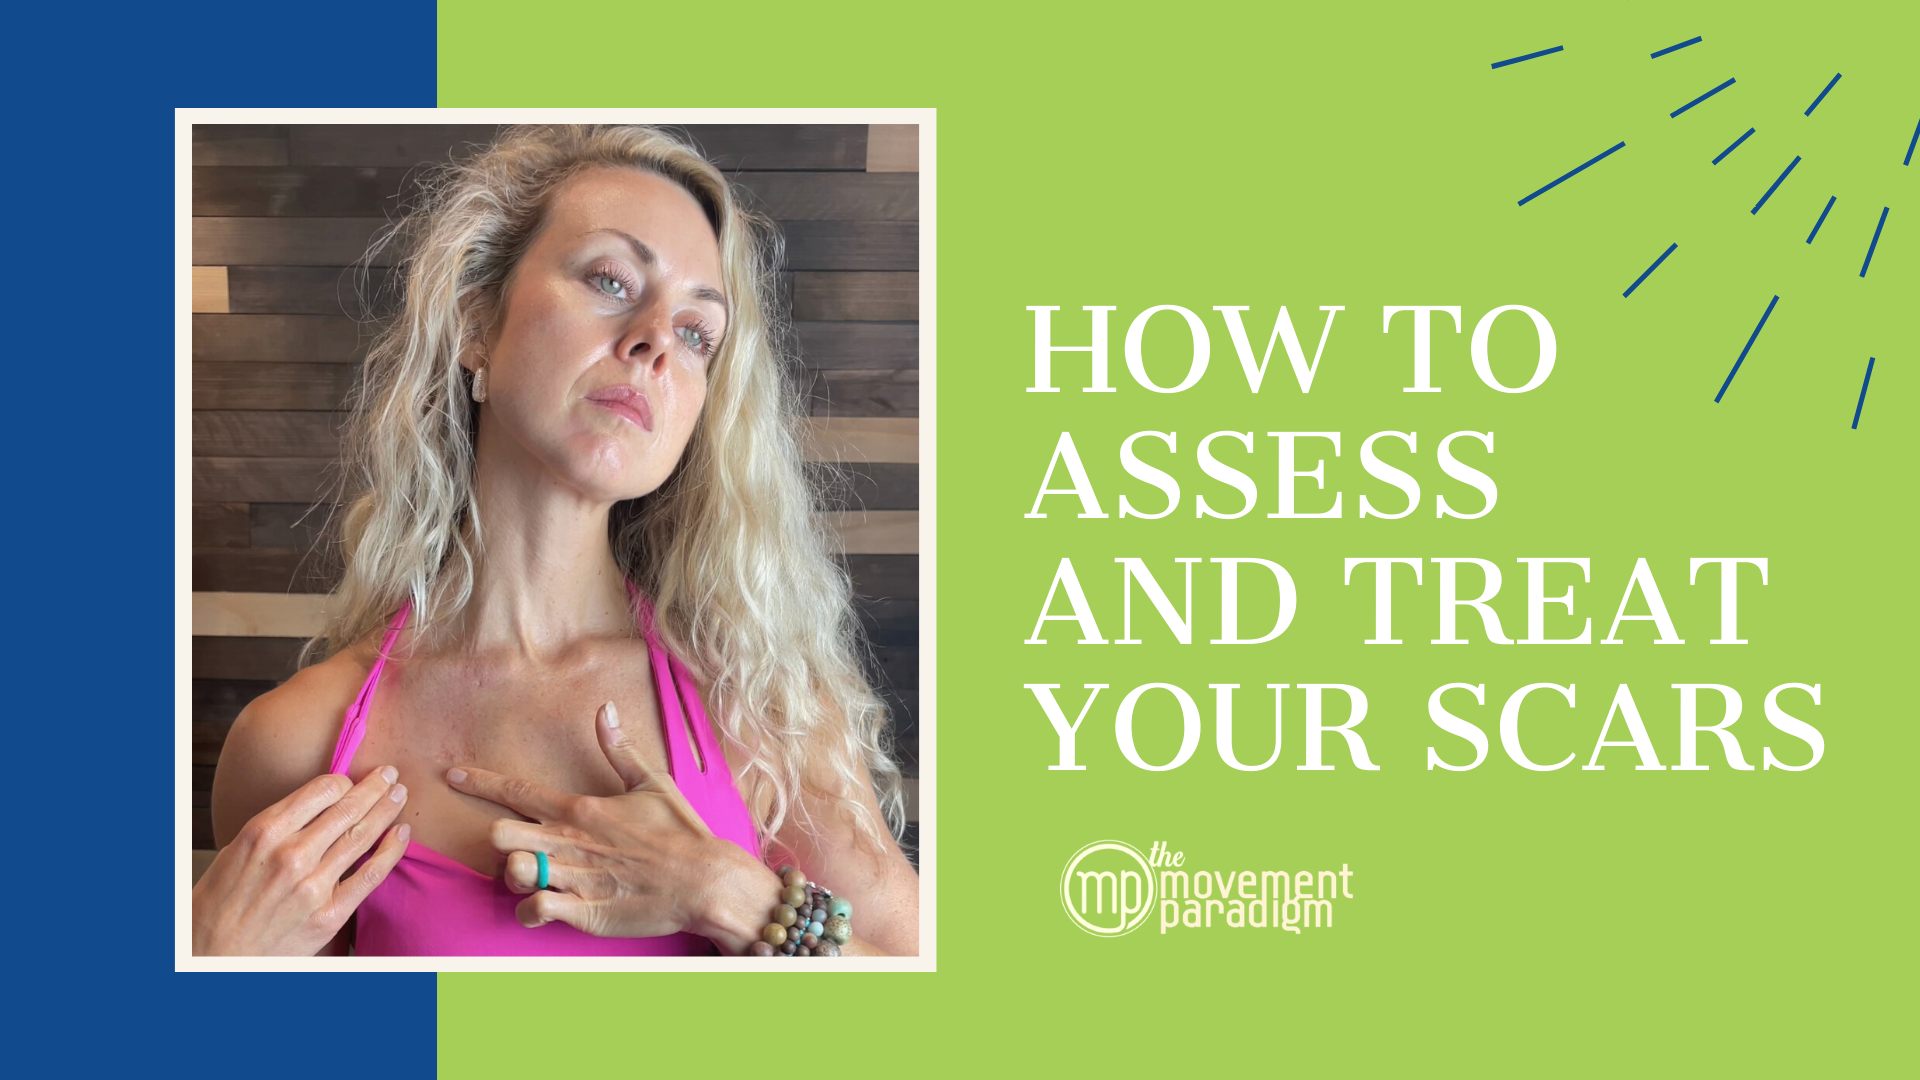 How To Assess and Treat Your Scars